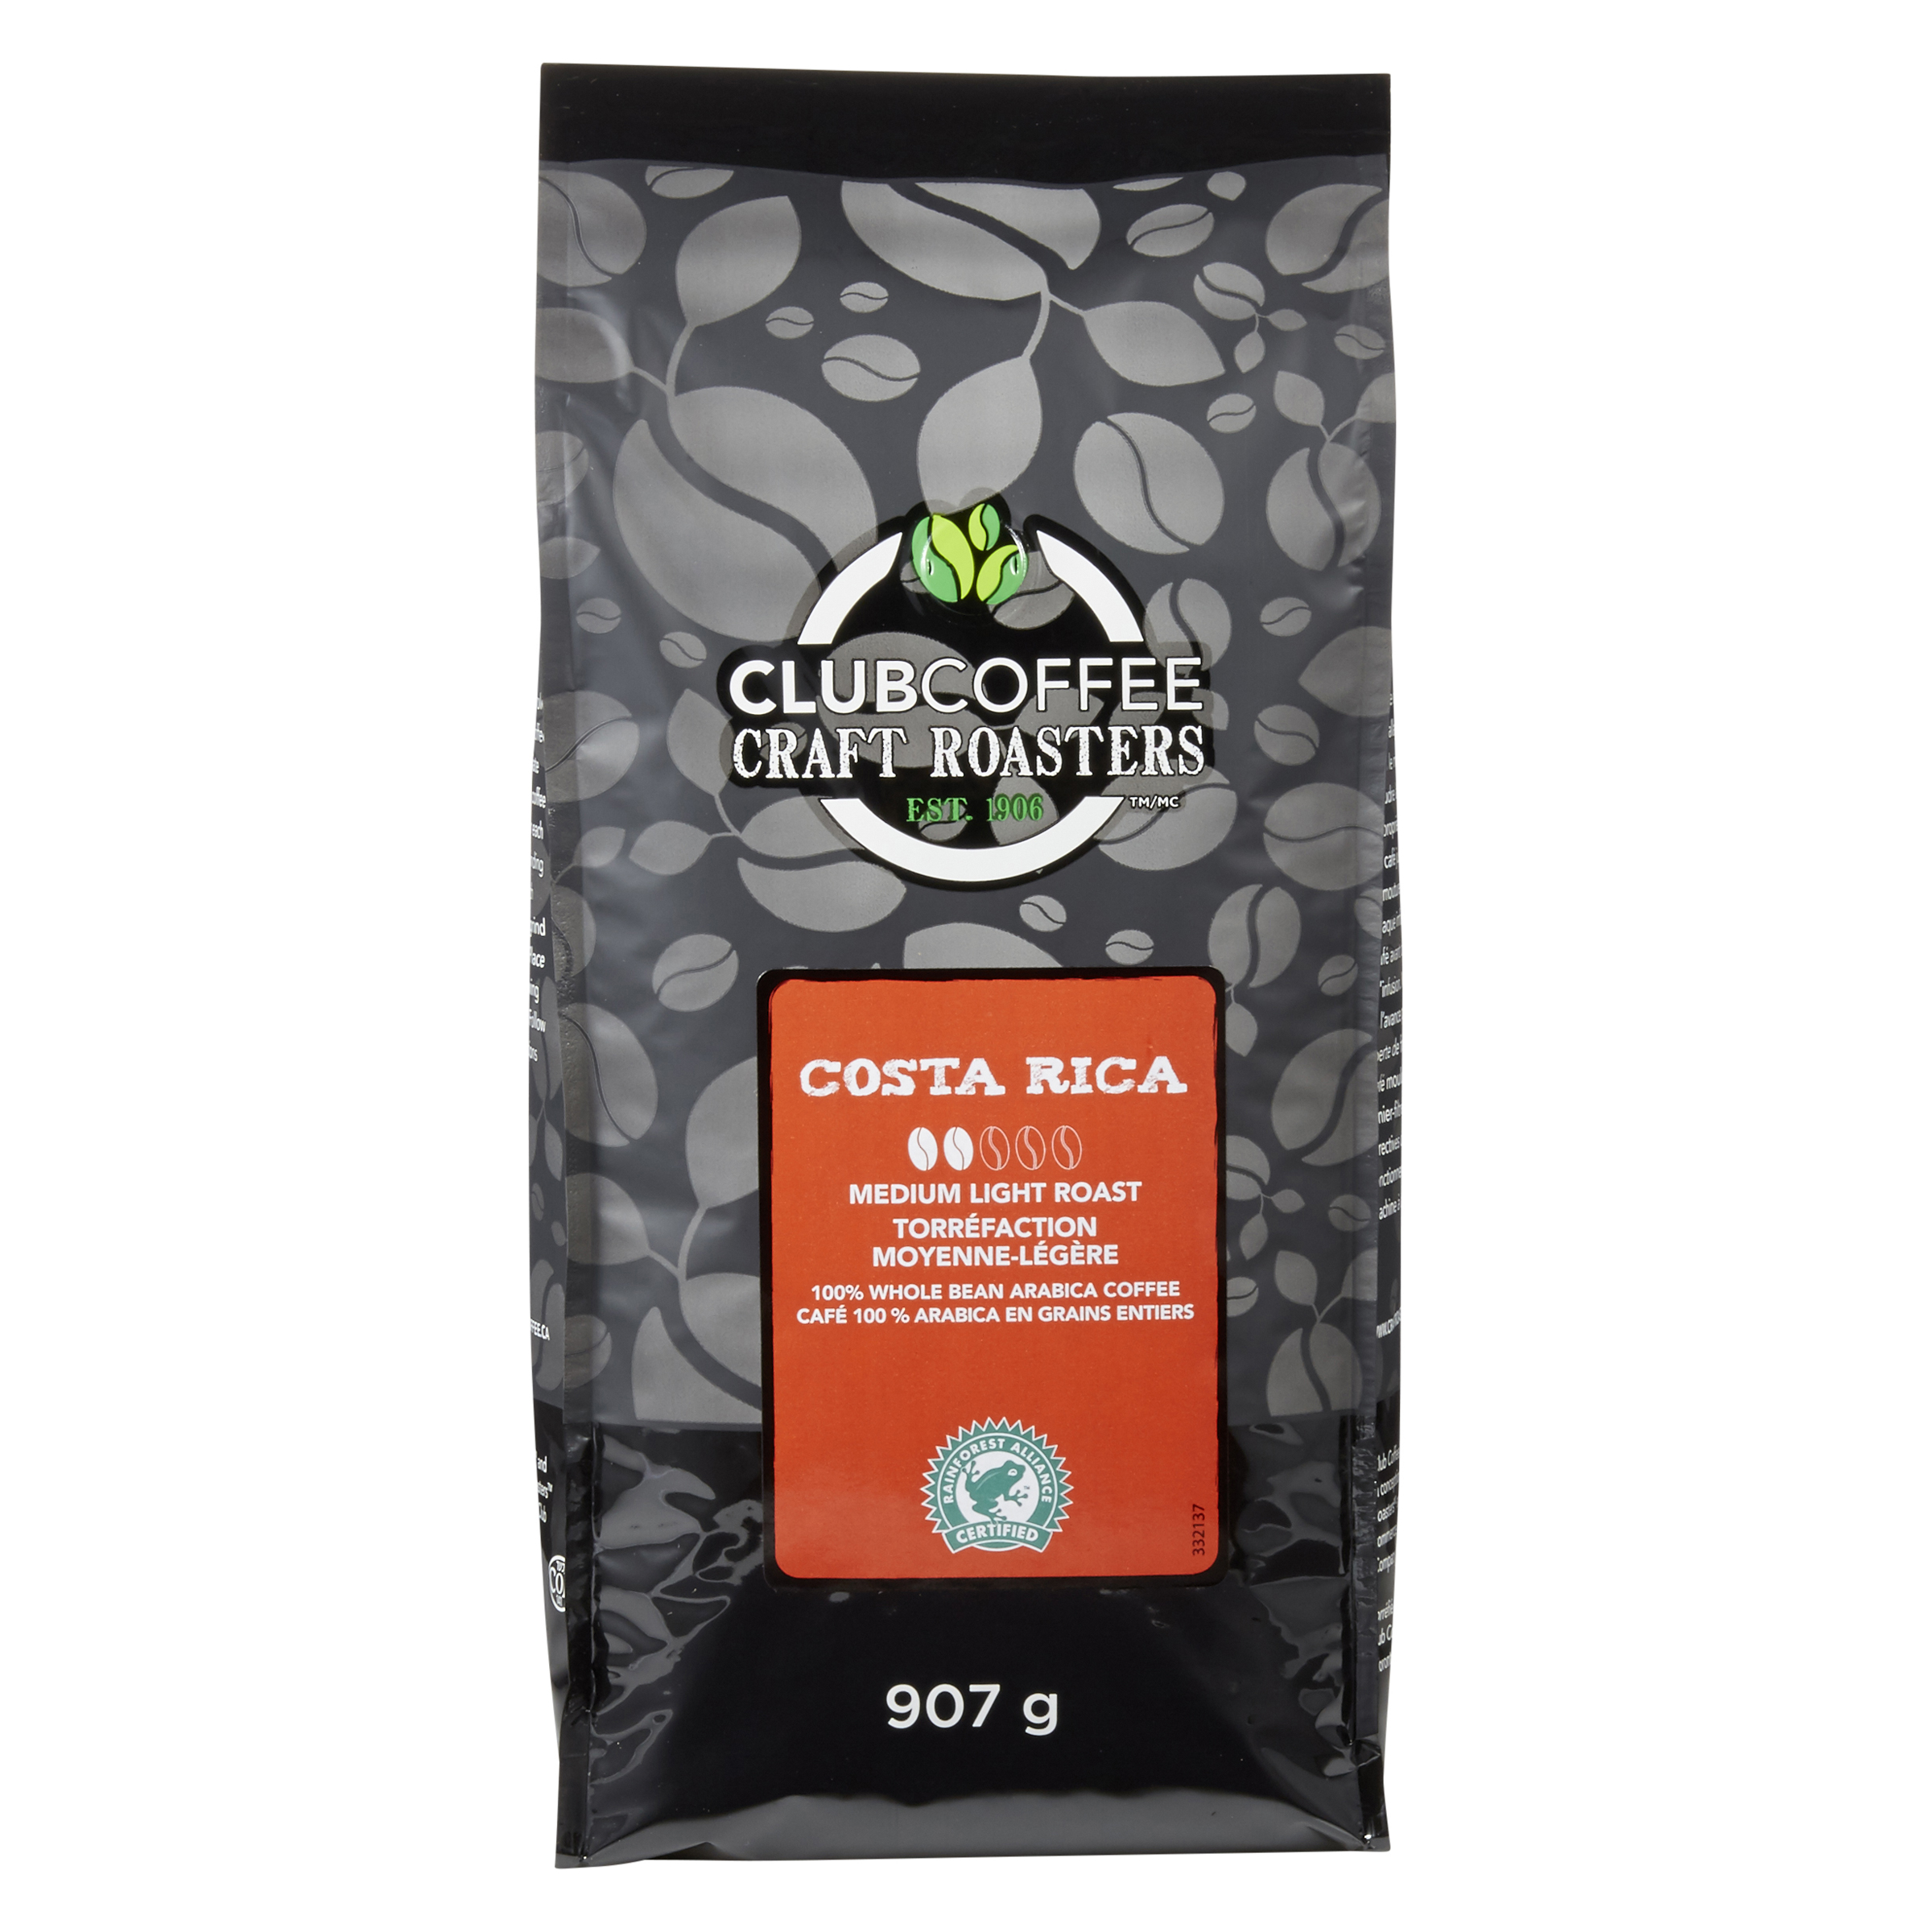 CRAFT ROASTERS COSTA RICA WHOLE BEAN BAG